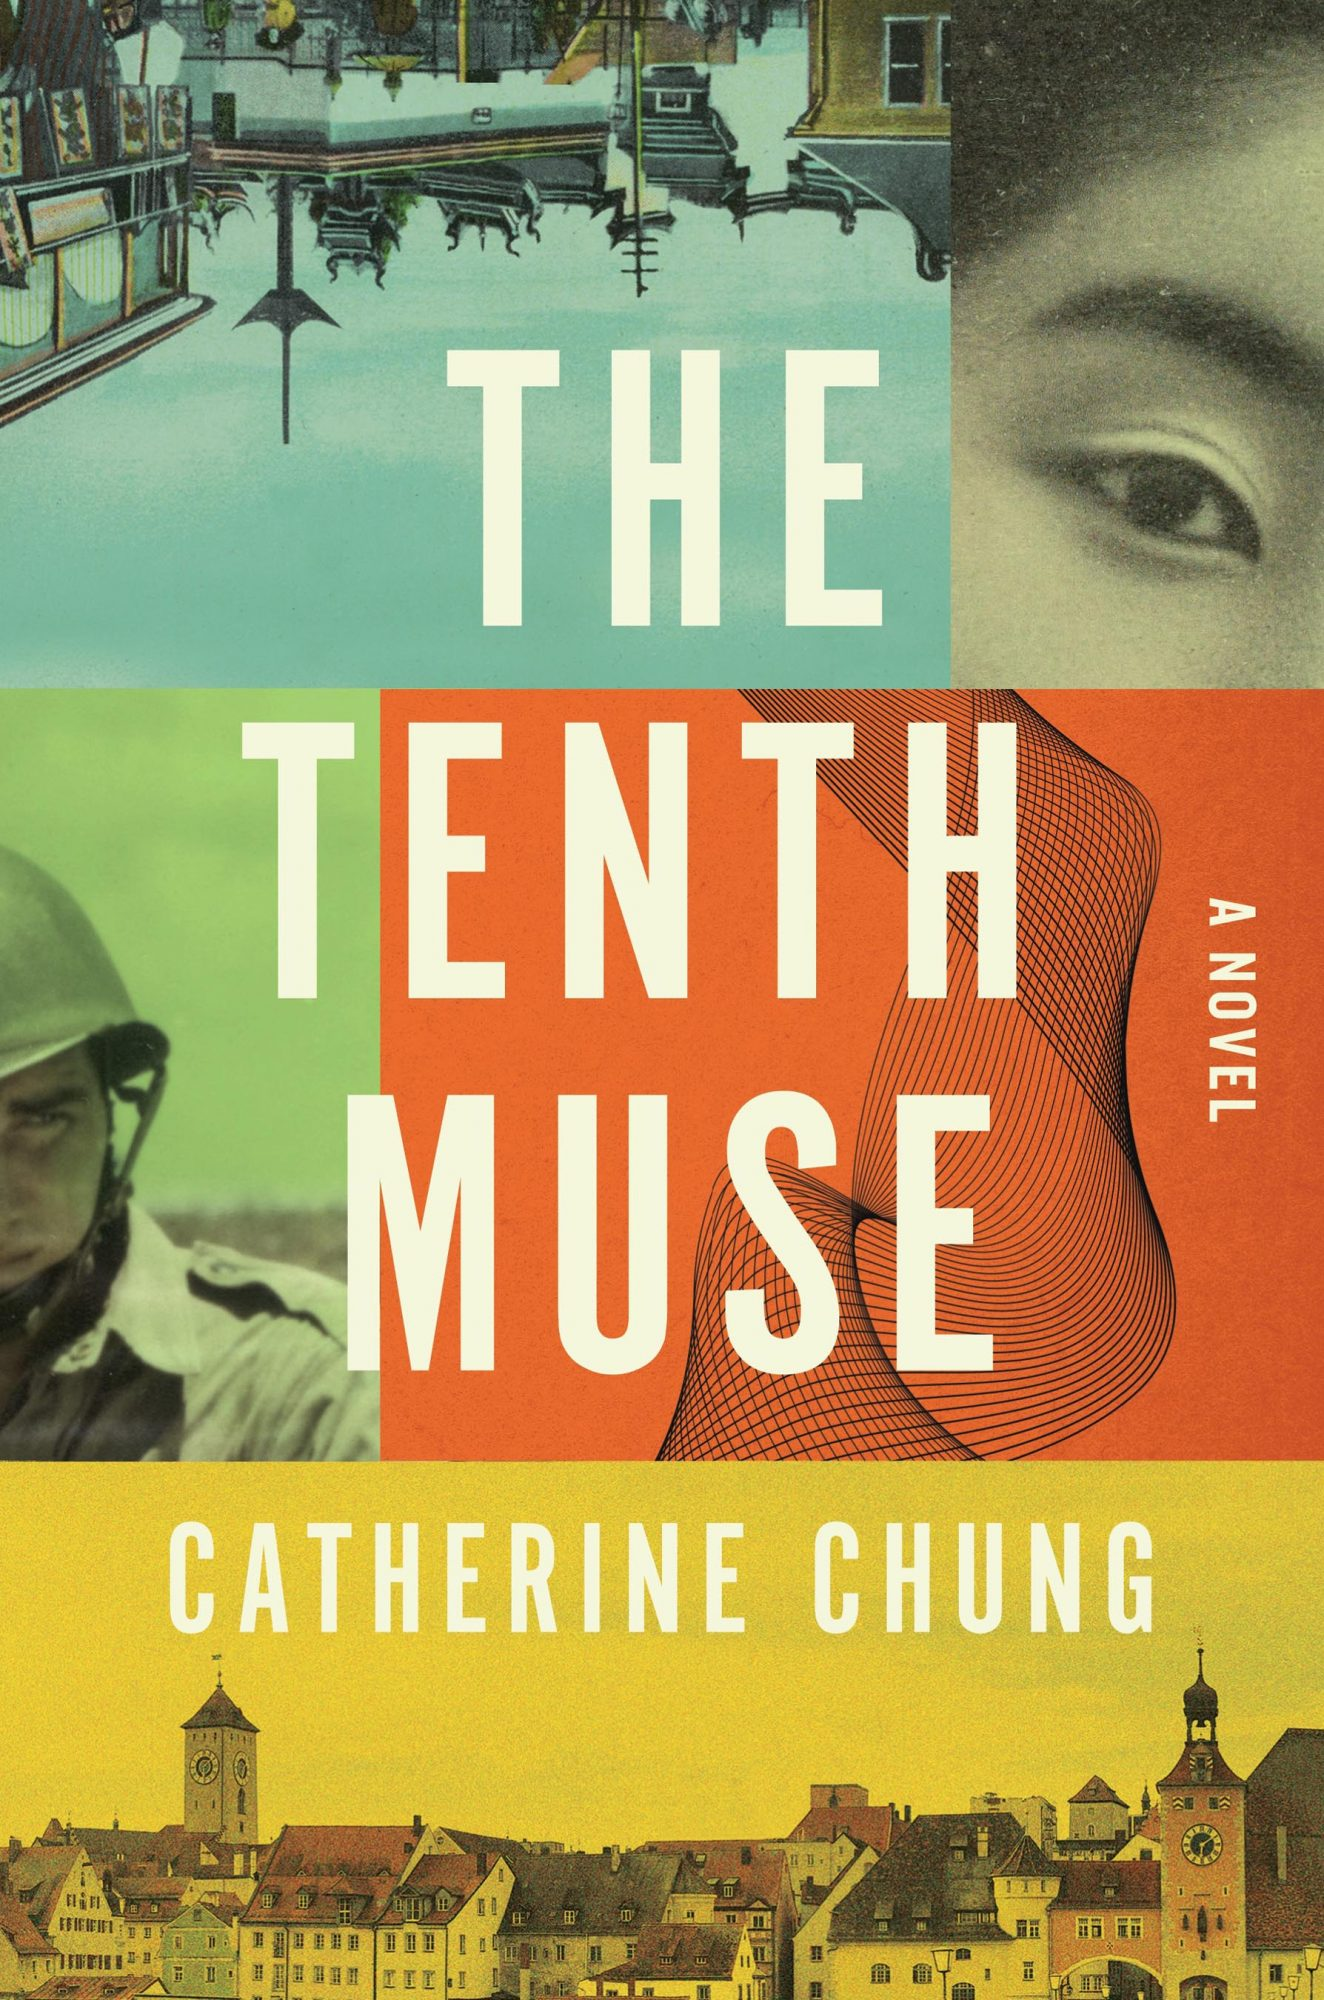 The Tenth Muse (2019)Author: Catherine Chung